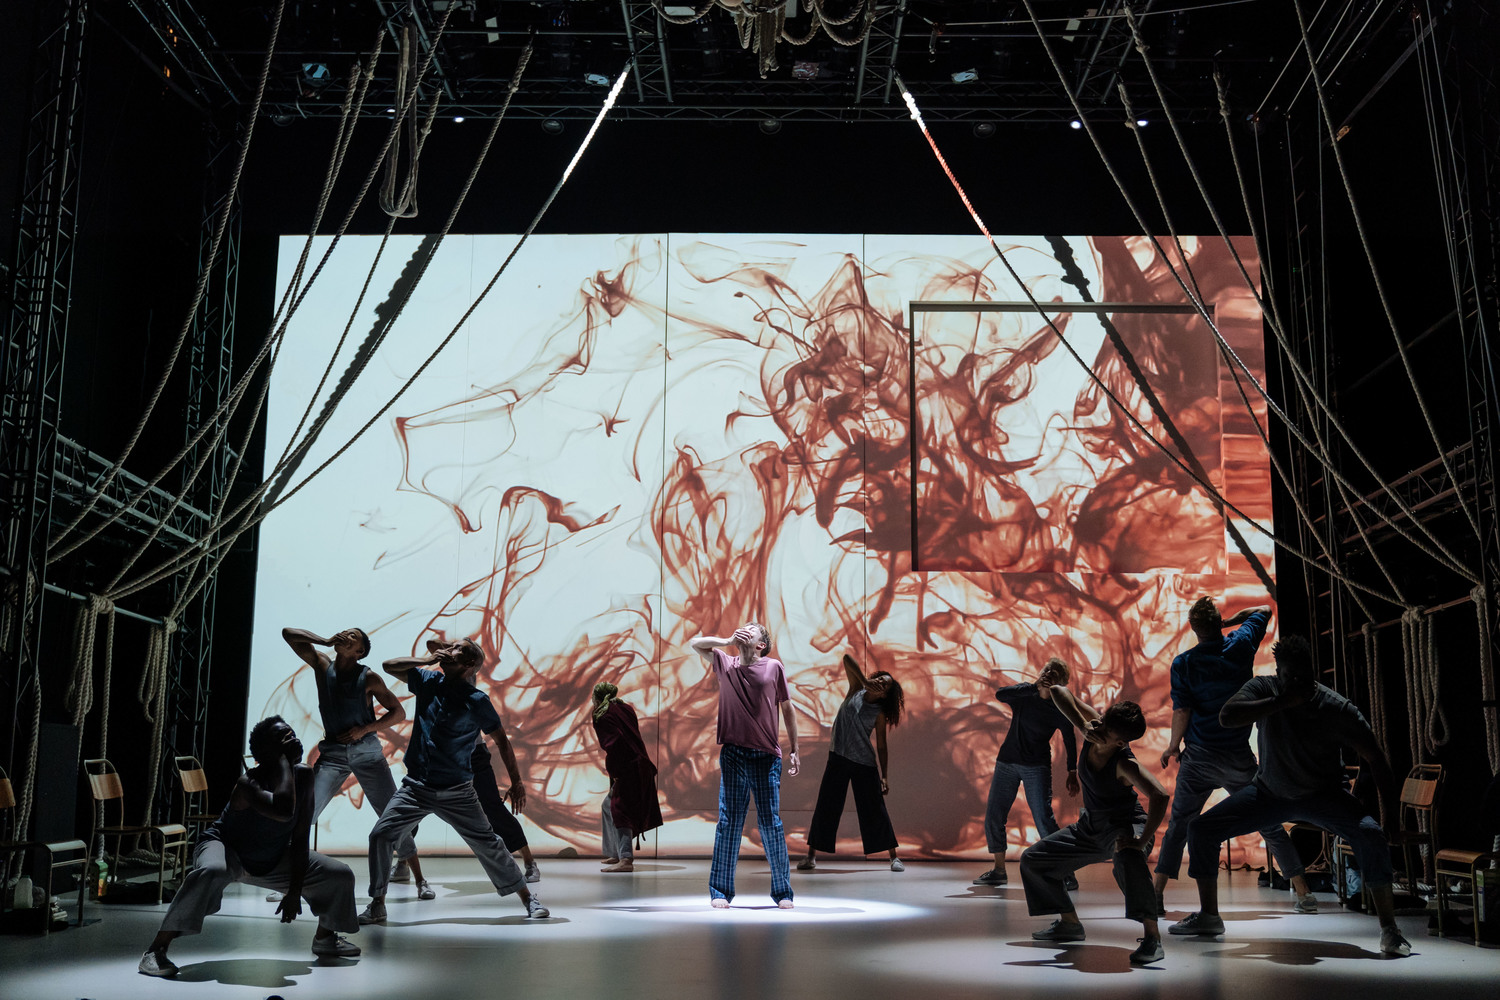 BWW Review: A MONSTER CALLS, Old Vic